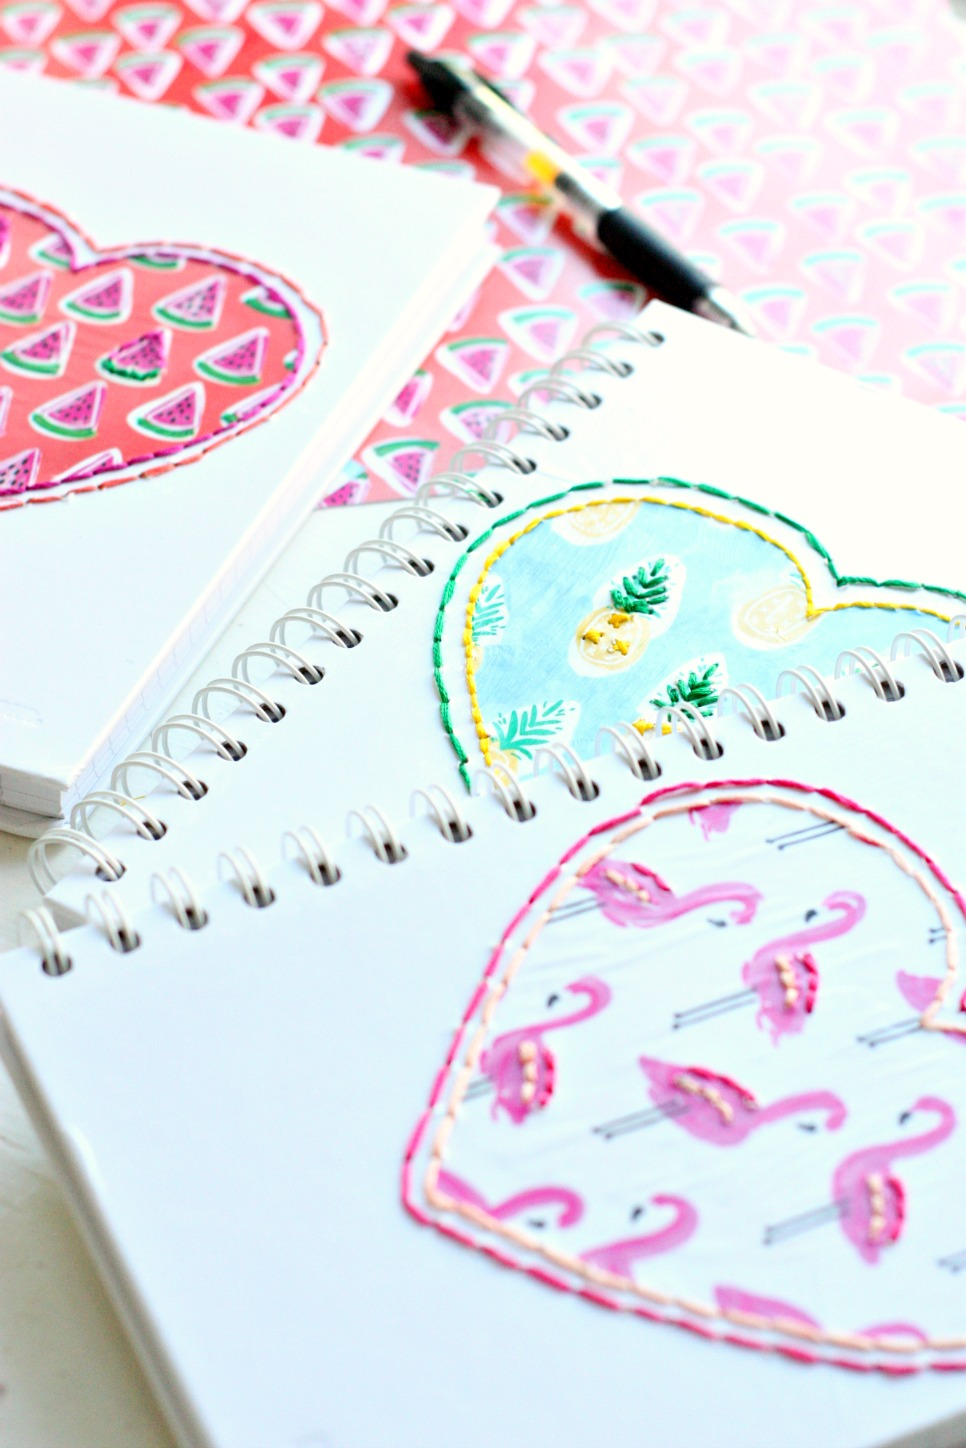 Become The School Hit With These DIY Ideas To Make Your Notebook Unique